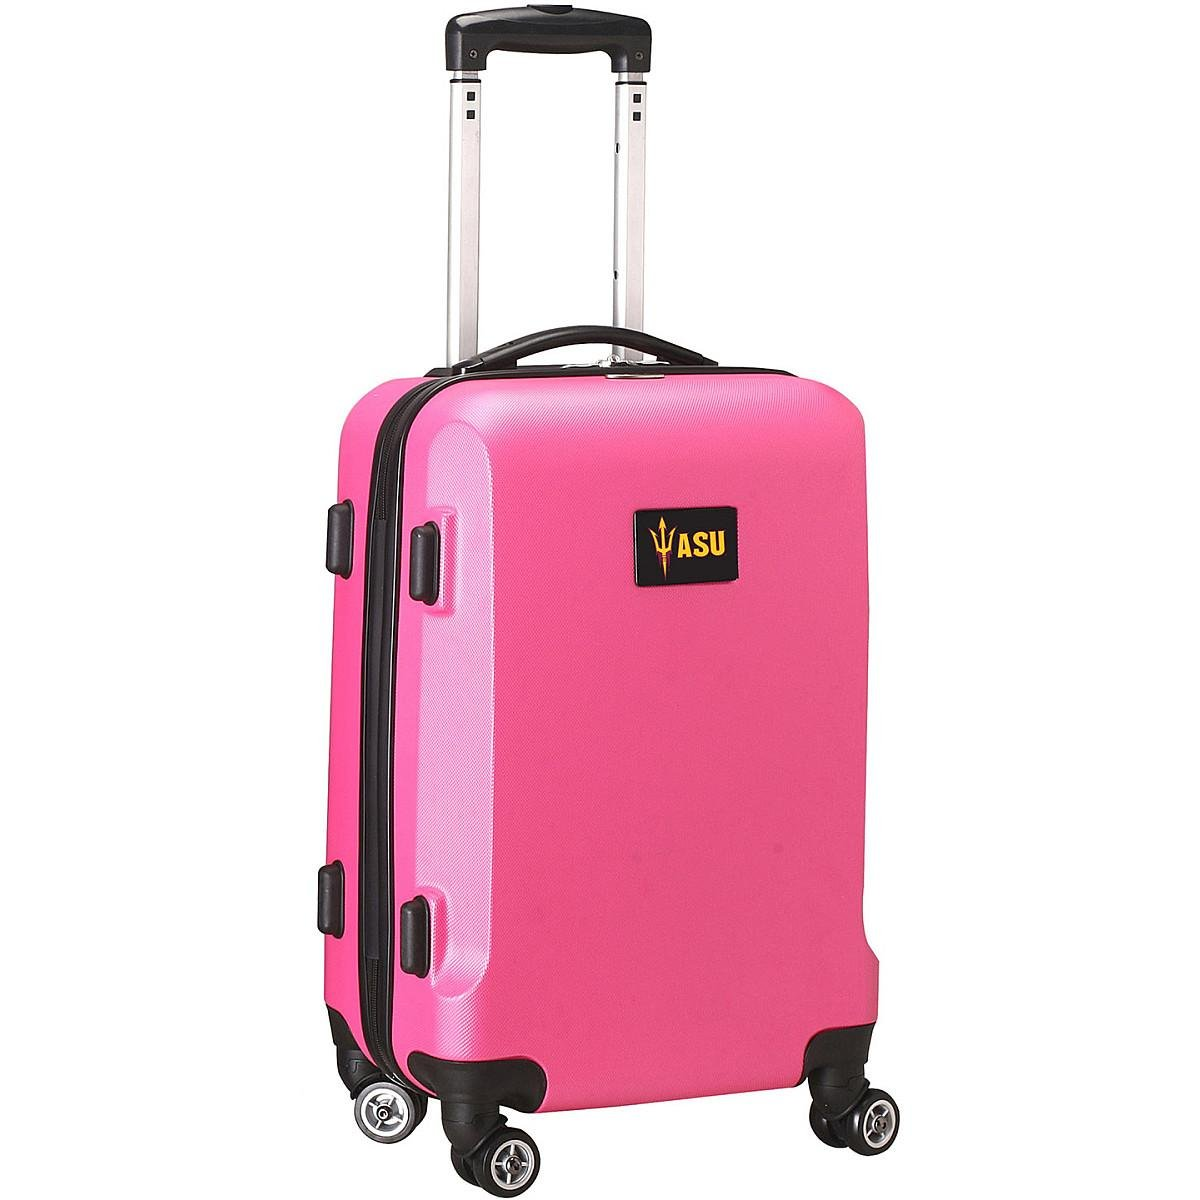 NCAA Arizona State Sun Devils Carry-On Hardcase Luggage Spinner, Pink